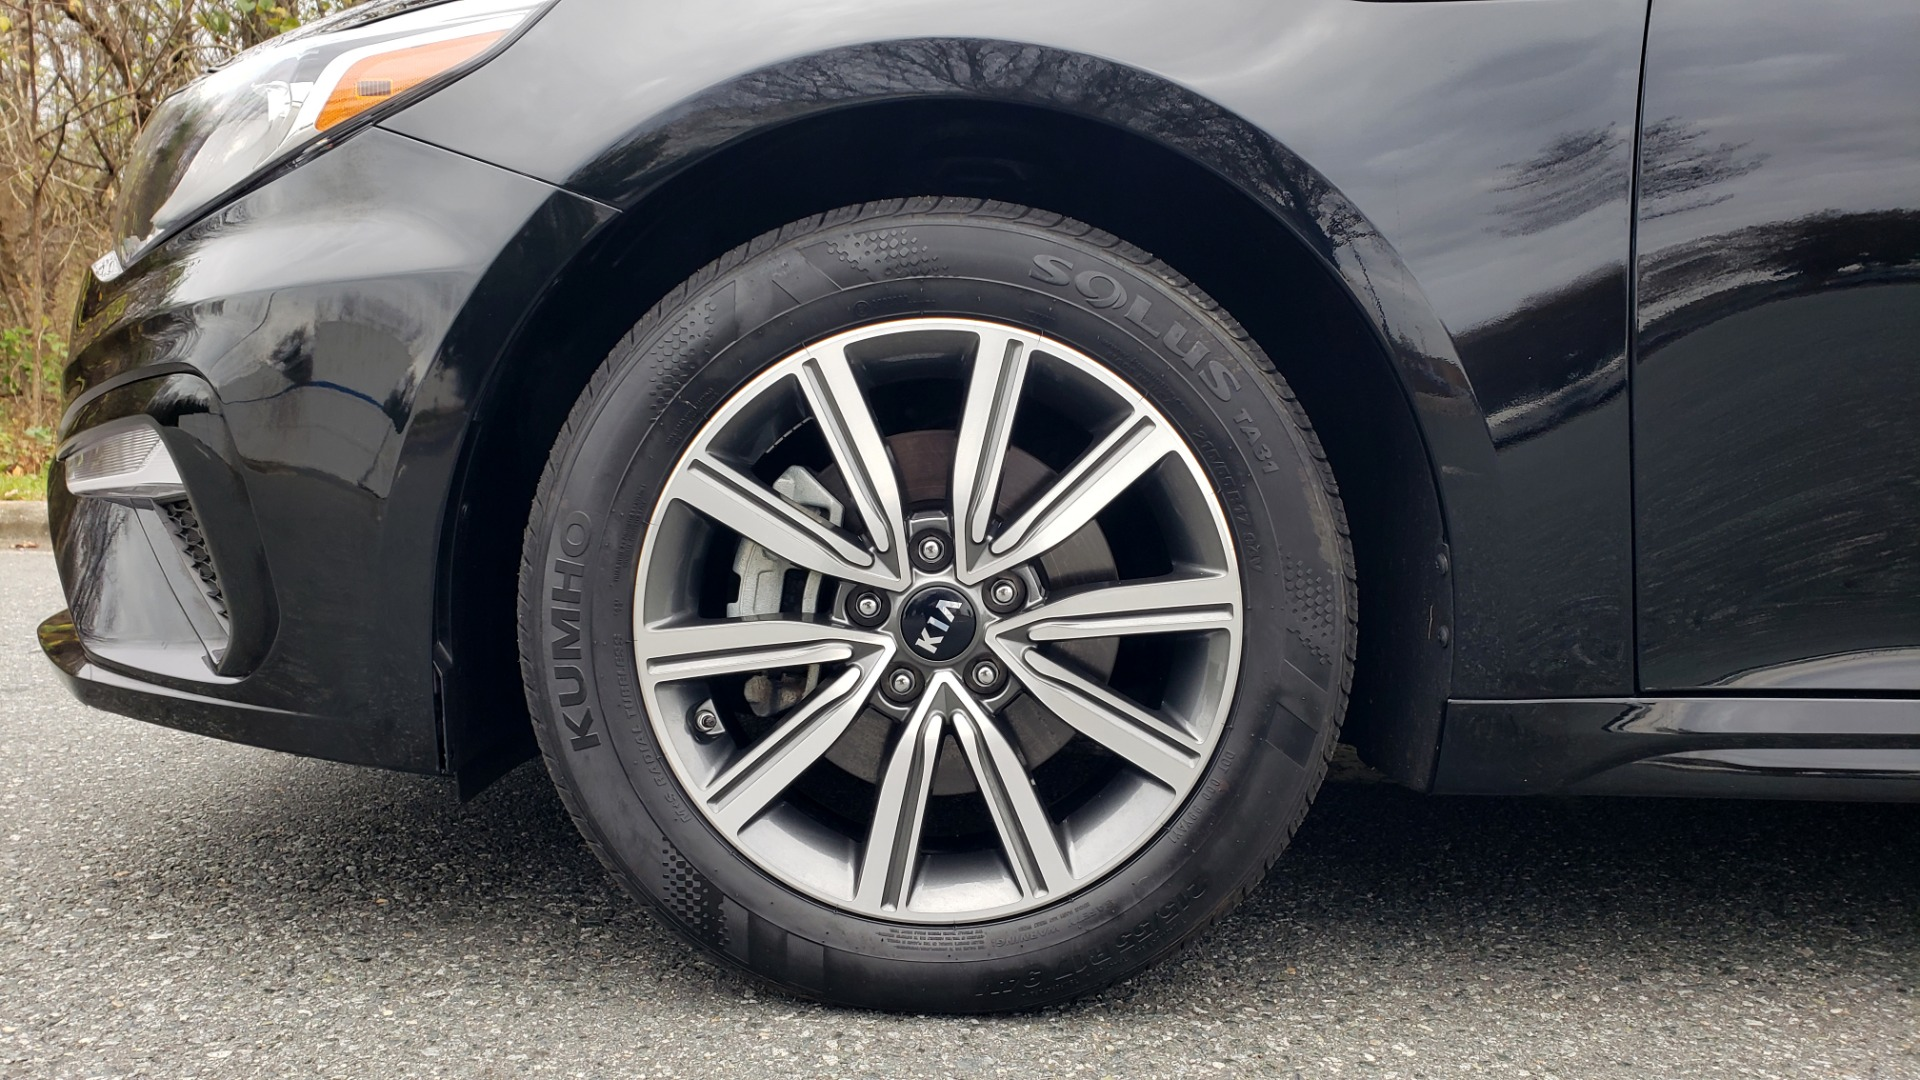 Used 2019 Kia OPTIMA LX AUTO / 2.4L 4-CYL / 6-SPD AUTO / REARVIEW / LOW MILES for sale $17,995 at Formula Imports in Charlotte NC 28227 75